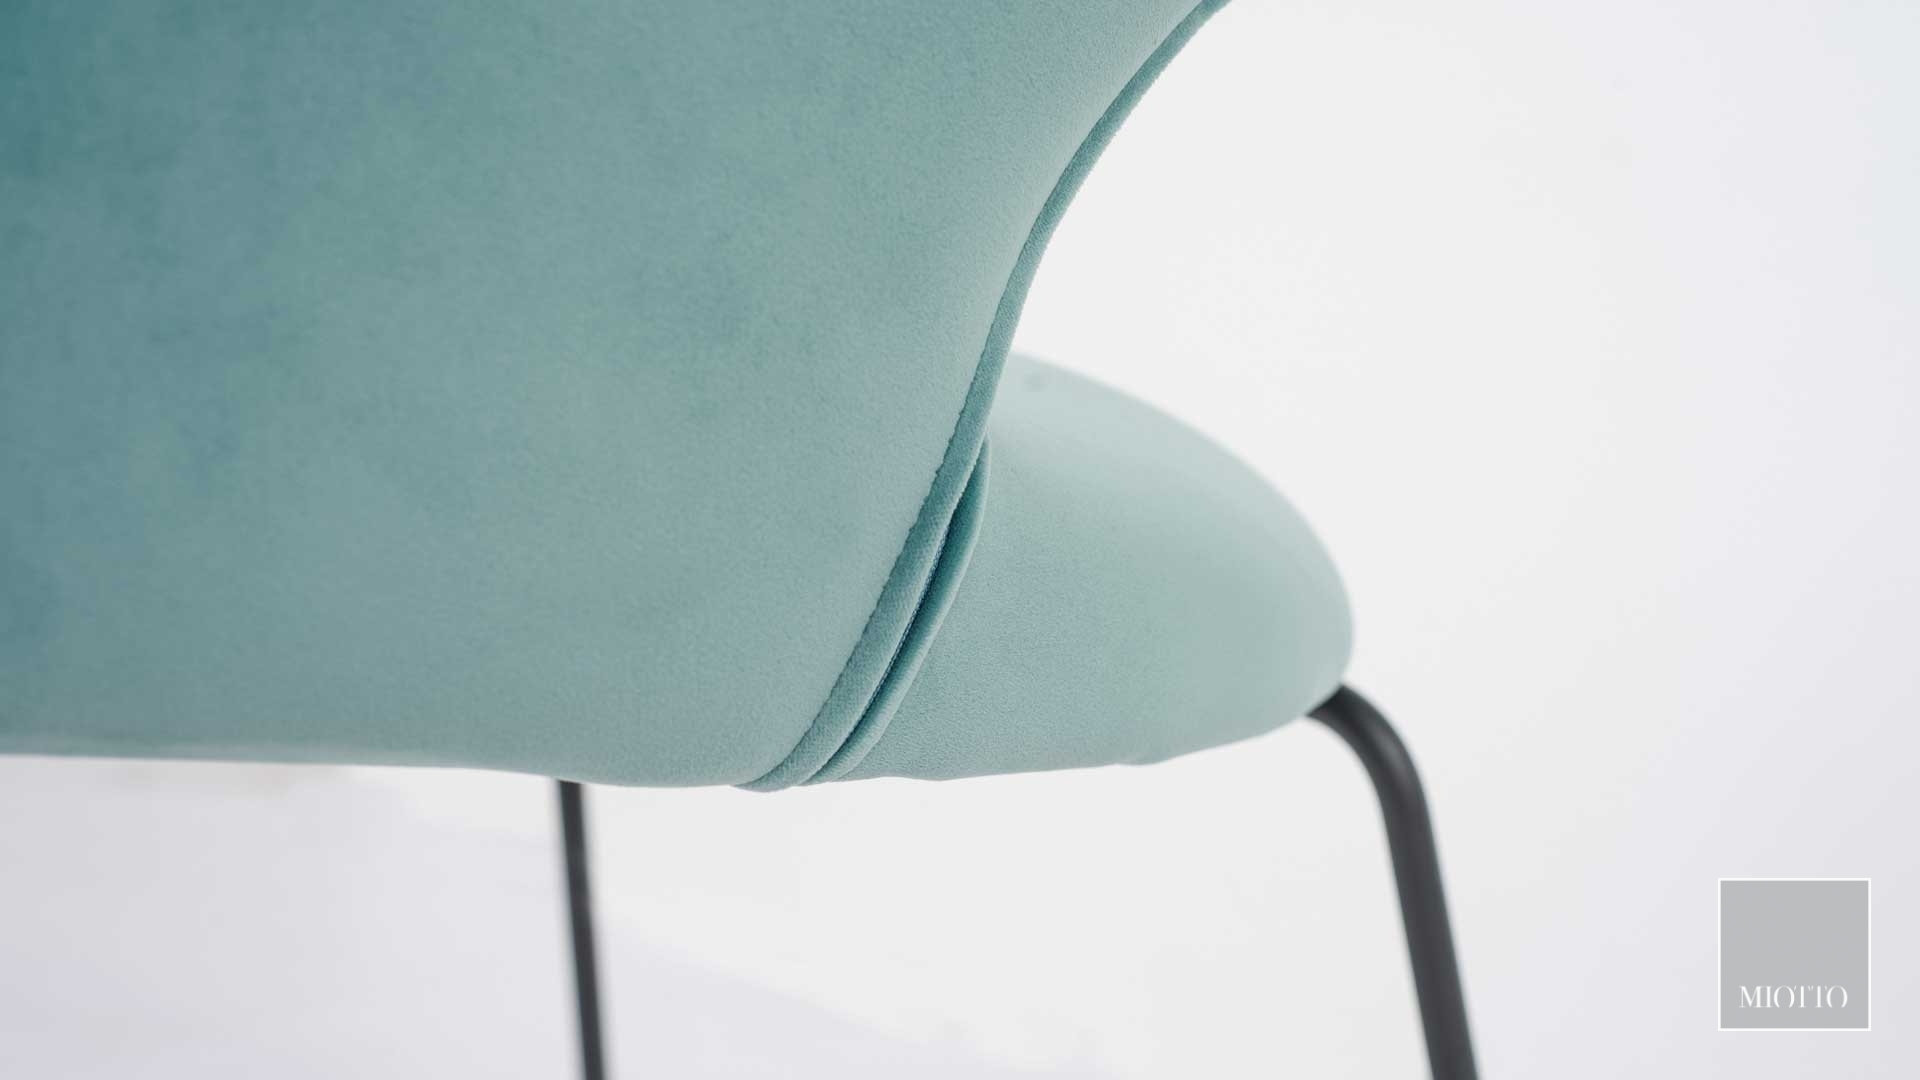 miotto_Aventino-dchr_mint_details_web